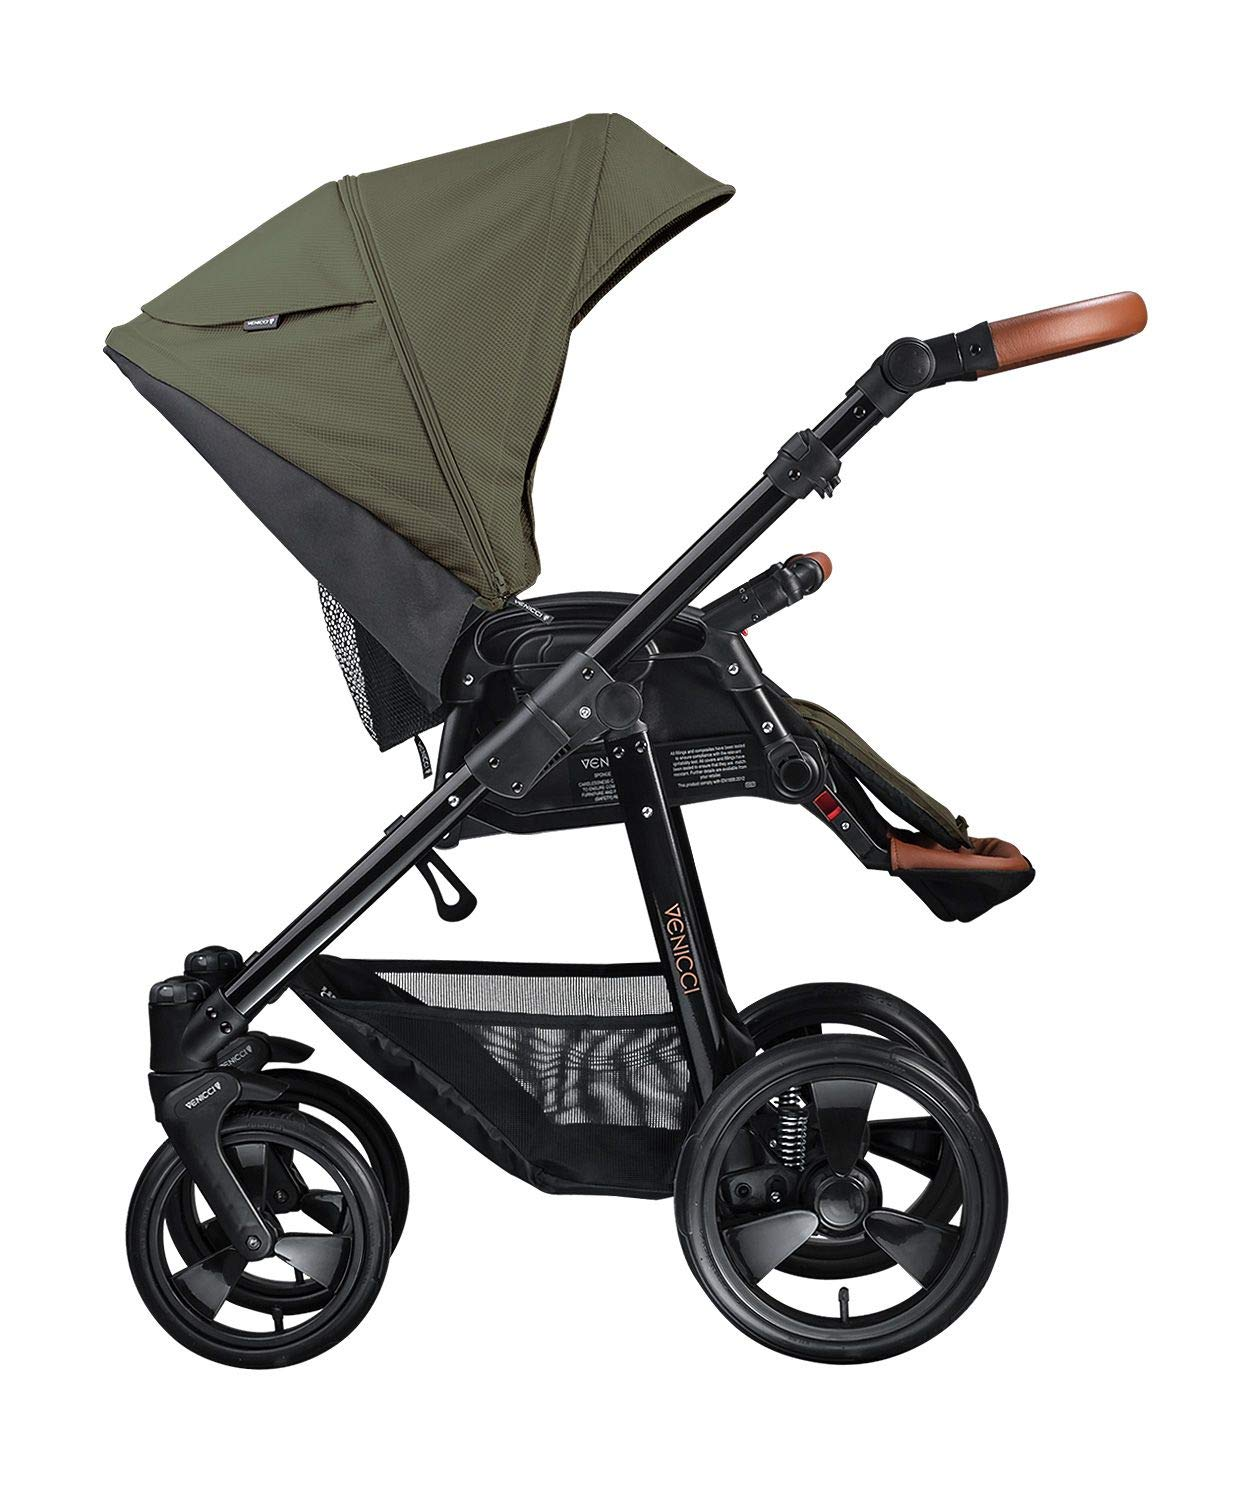 Venicci Gusto 2-in-1 Travel System - Green - with Carrycot + Changing Bag + Footmuff + Raincover + Mosquito Net + 5-Point Harness and UV 50+ Fabric + Cup Holder Venicci 2-in-1 Pram and Pushchair with custom travel options Suitable for your baby from birth until approximately 36 months 5-point harness to enhance the safety of your child 3